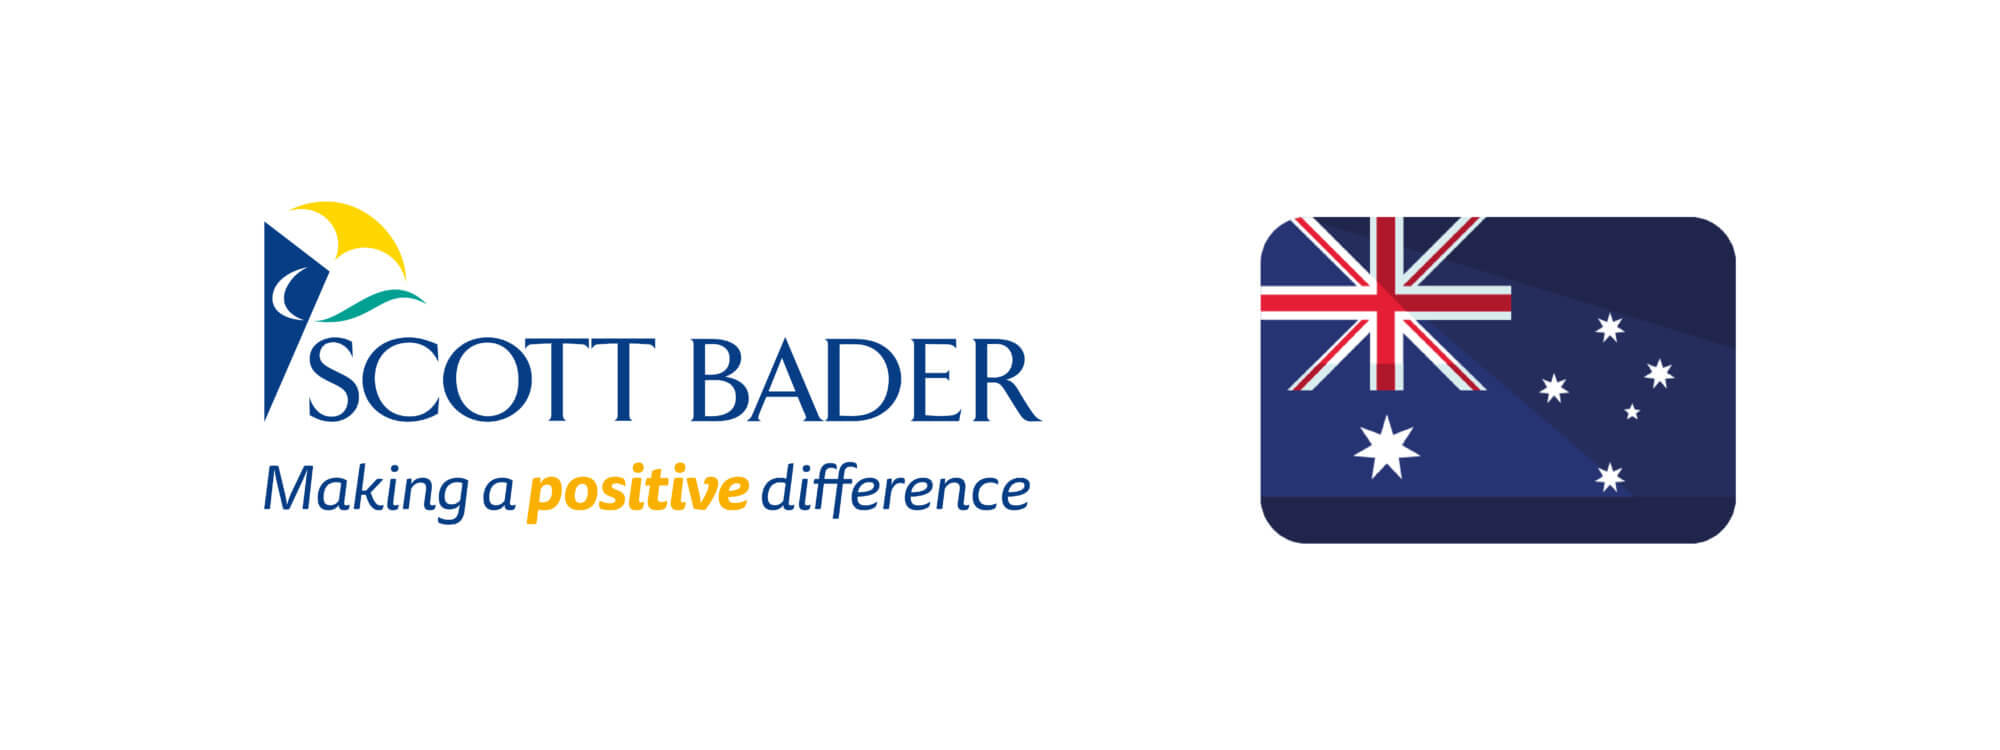 Scott Bader Australia Pty Ltd acquires the assets of Summit Composites Pty Ltd